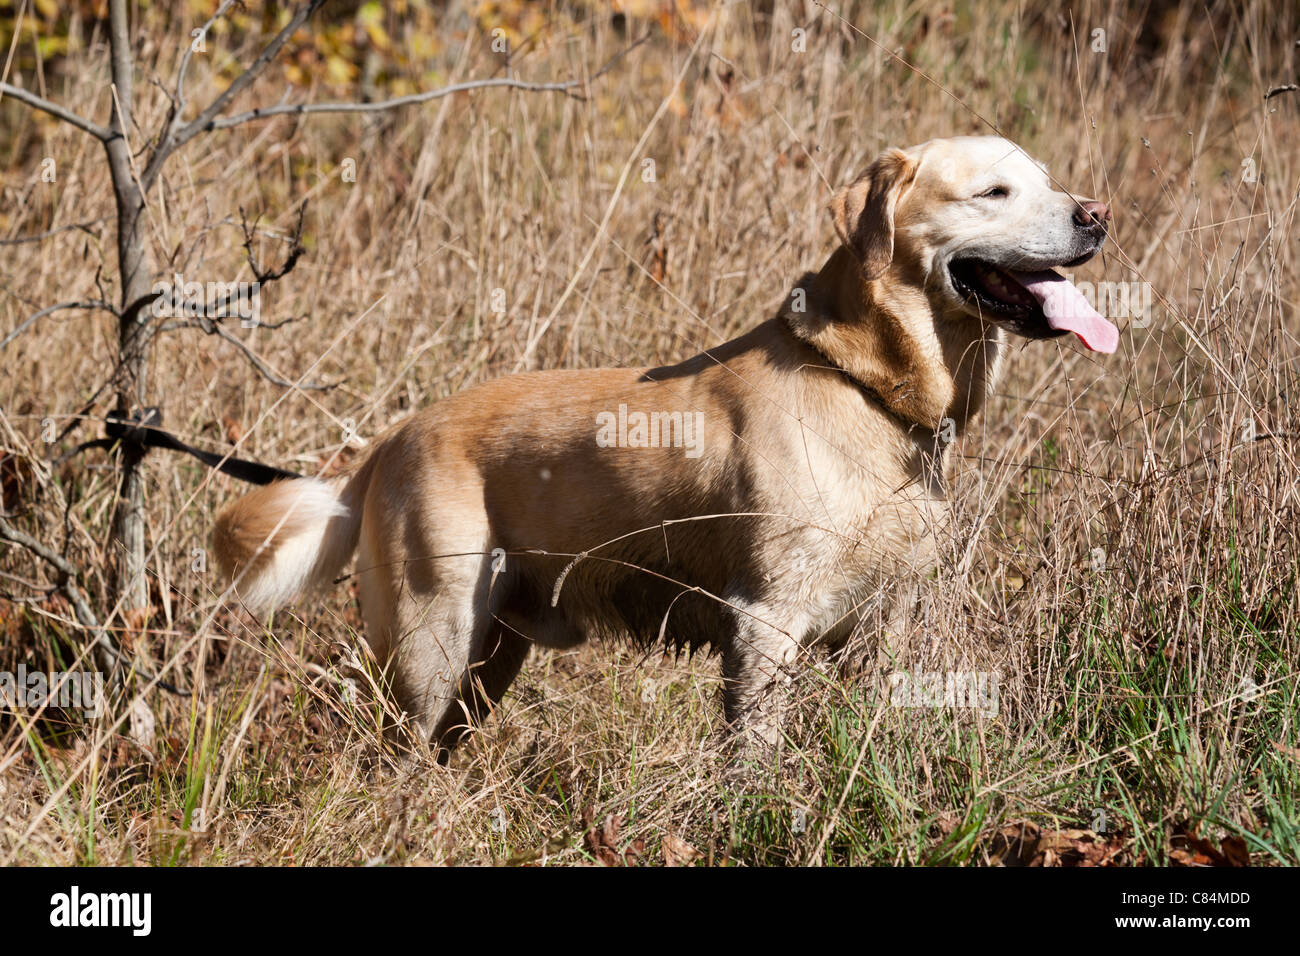 Golden Retriever profile in a field of dry grass with tongue out - Stock Image